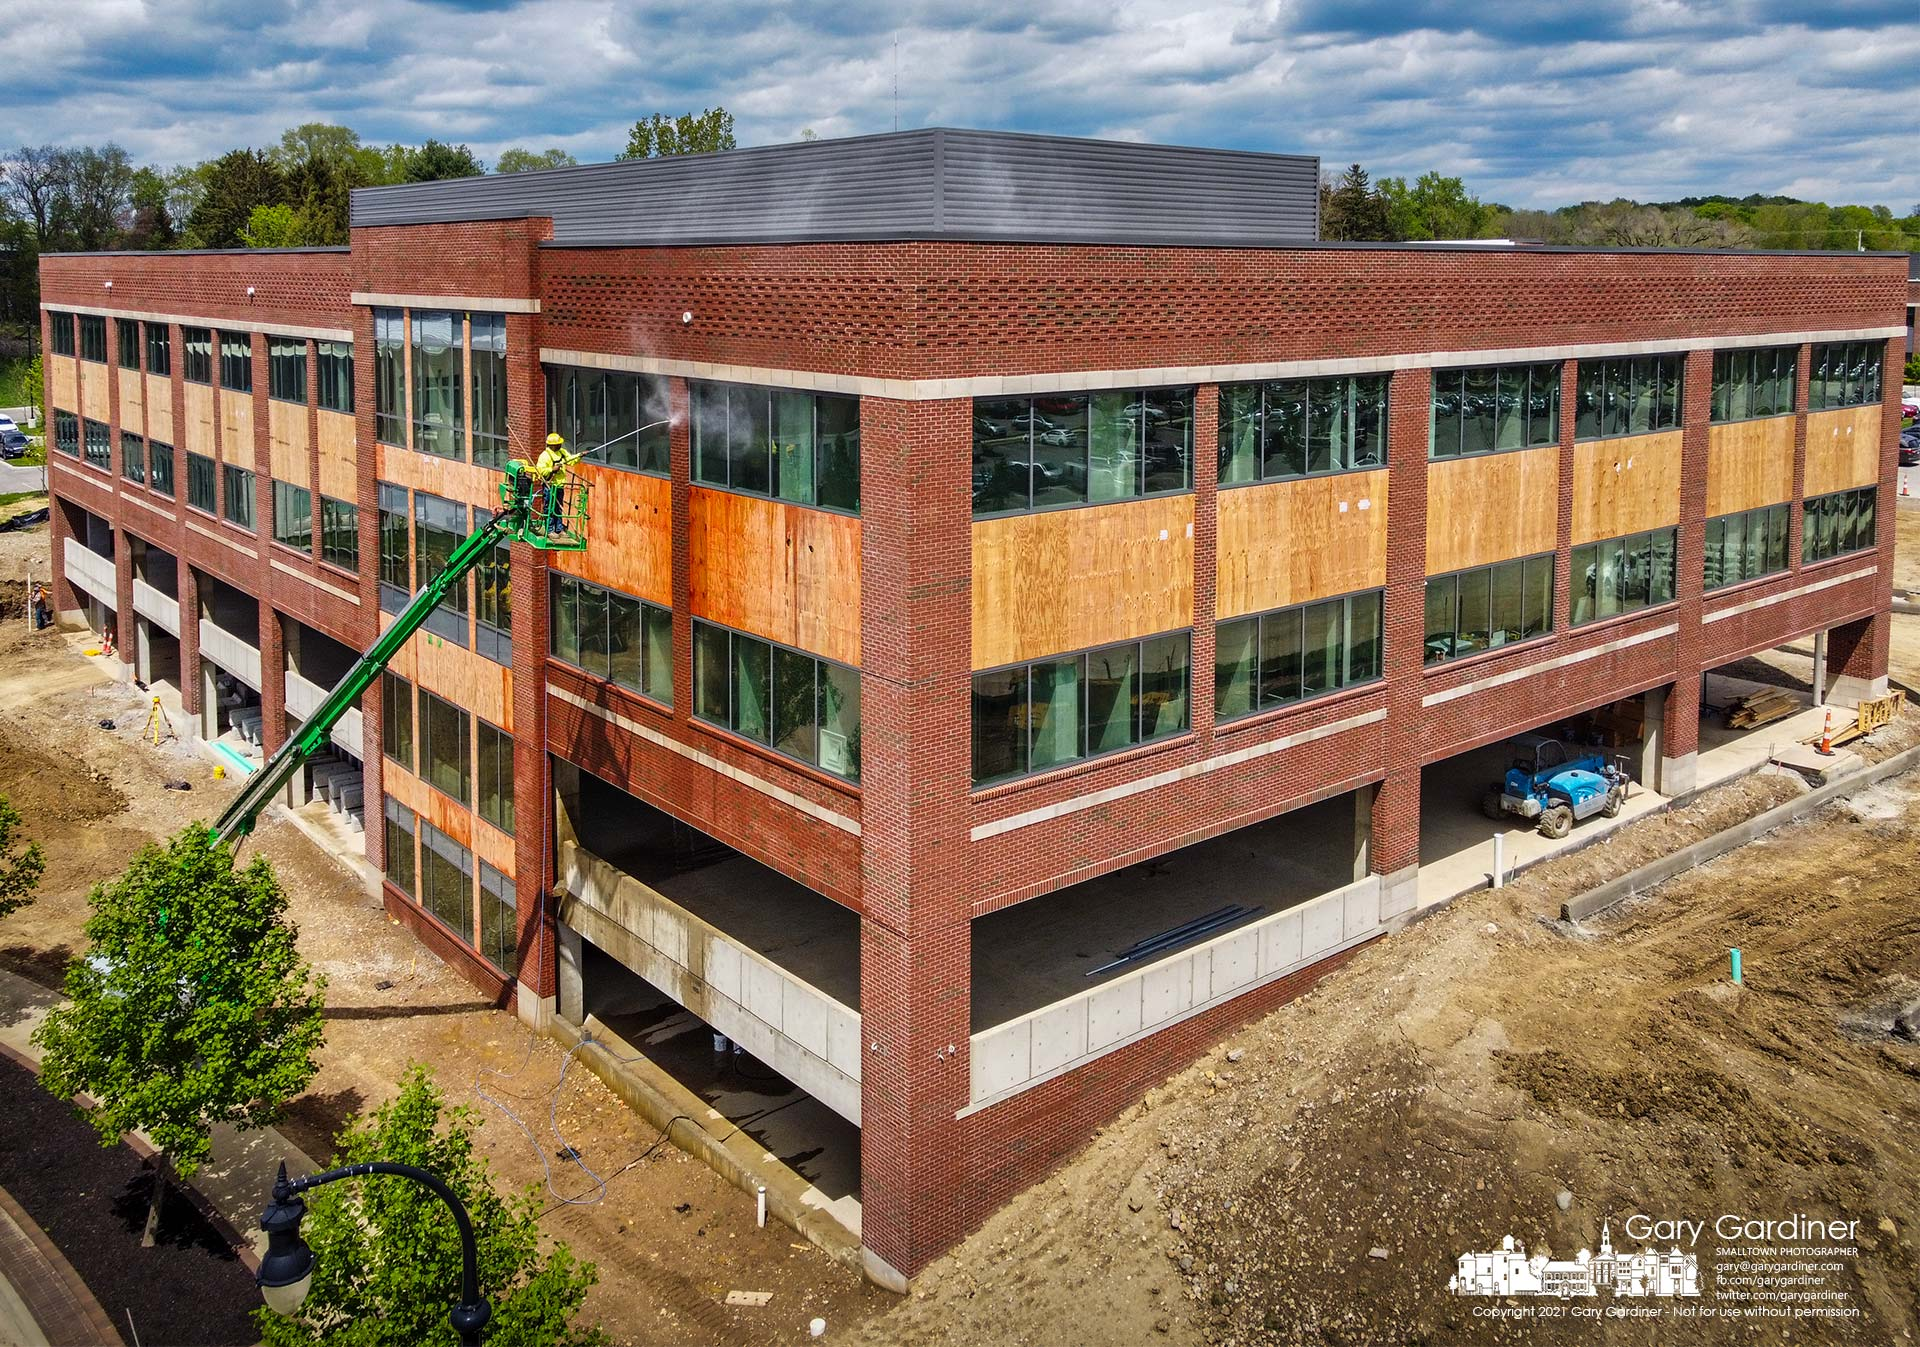 A work crew completes pressure washing the newly laid brick exterior of the third COPC building being built on Africa Road. My Final Photo for May 6, 2021.